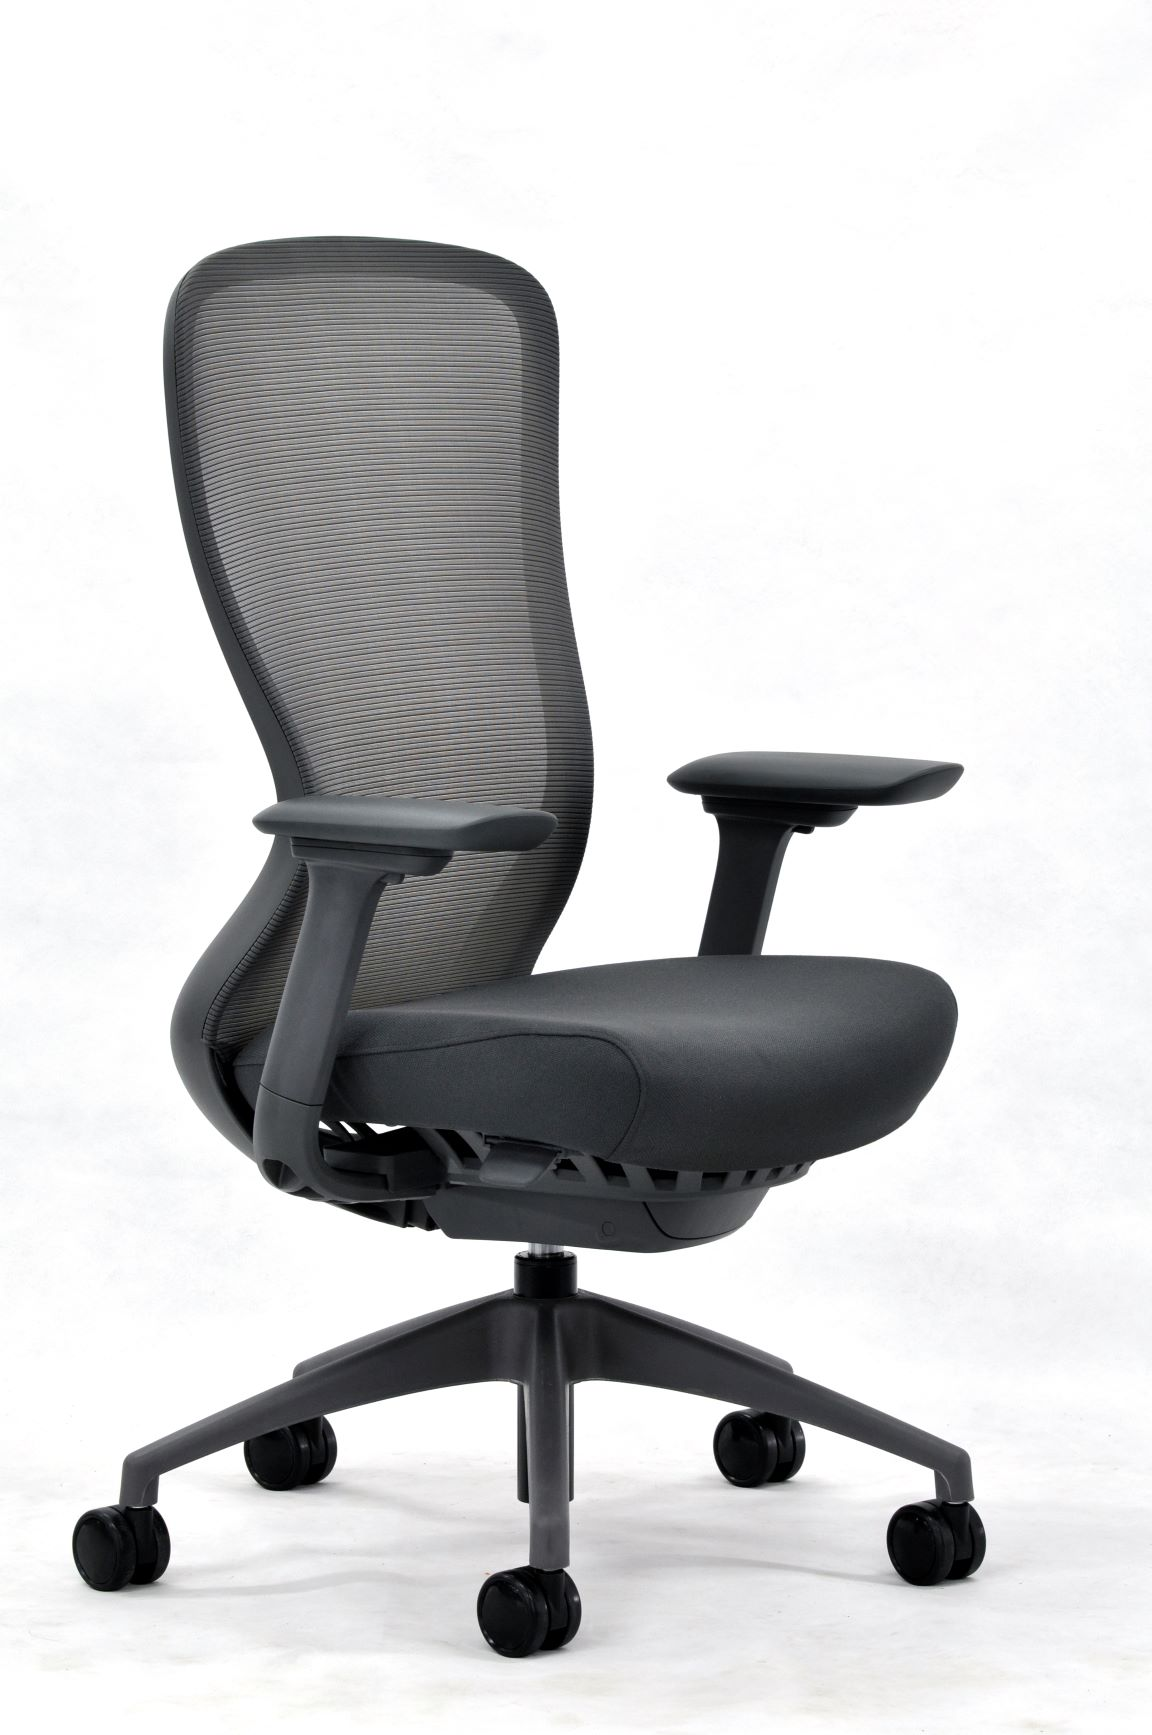 eurotech seating black exchange office chair